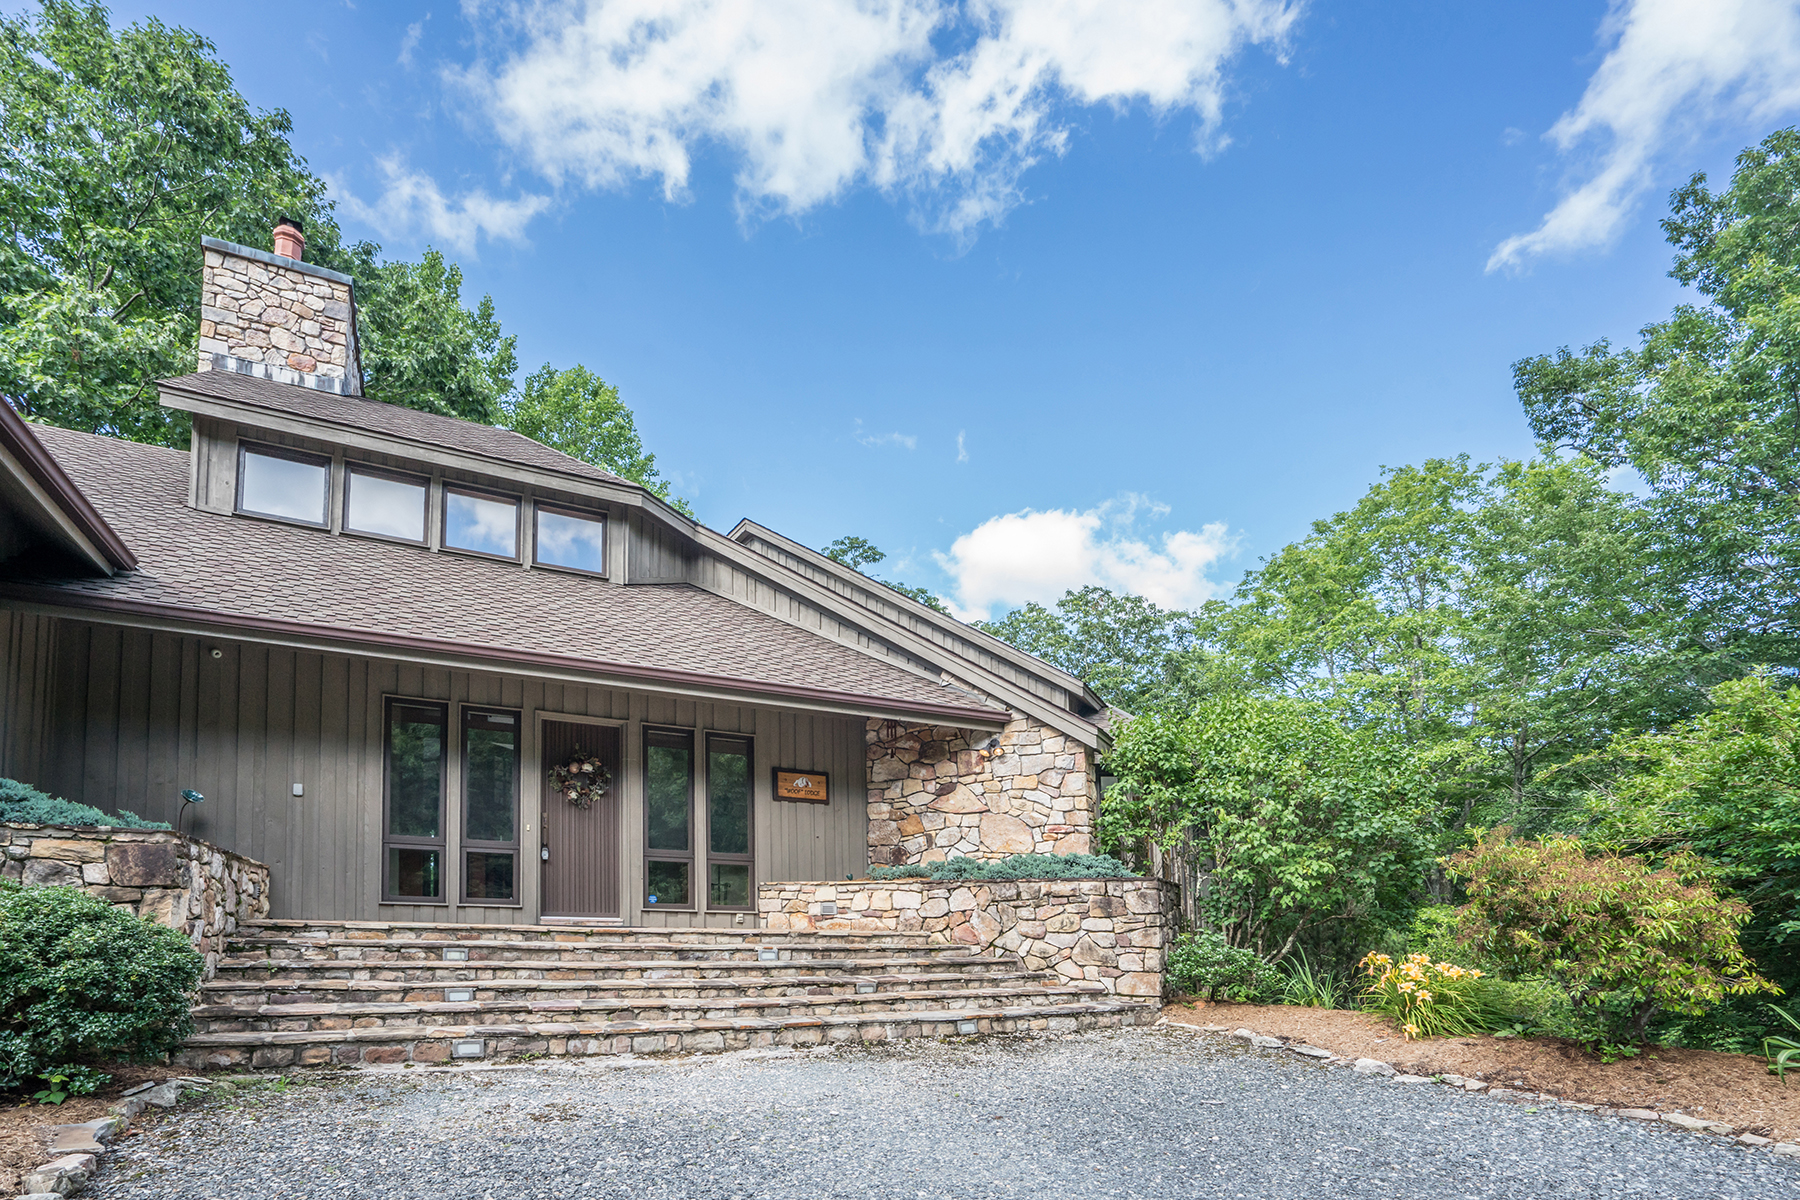 Additional photo for property listing at VALLE CRUCIS 910  Dutch Creek Rd,  Banner Elk, North Carolina 28604 United States